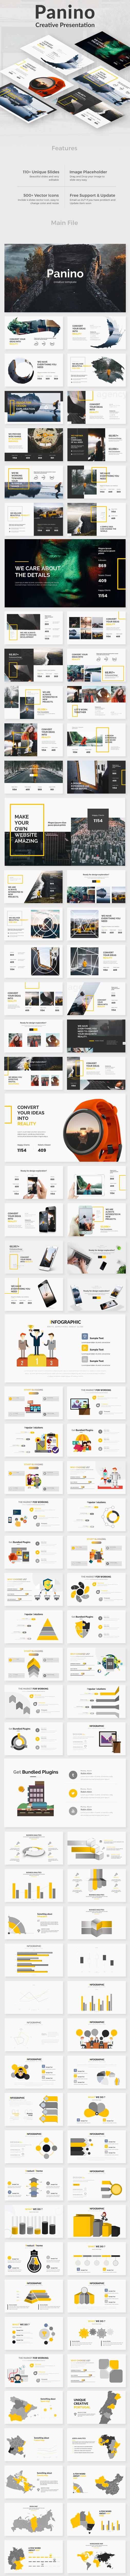 Panino Creative Design Google Slide Template - Google Slides Presentation Templates